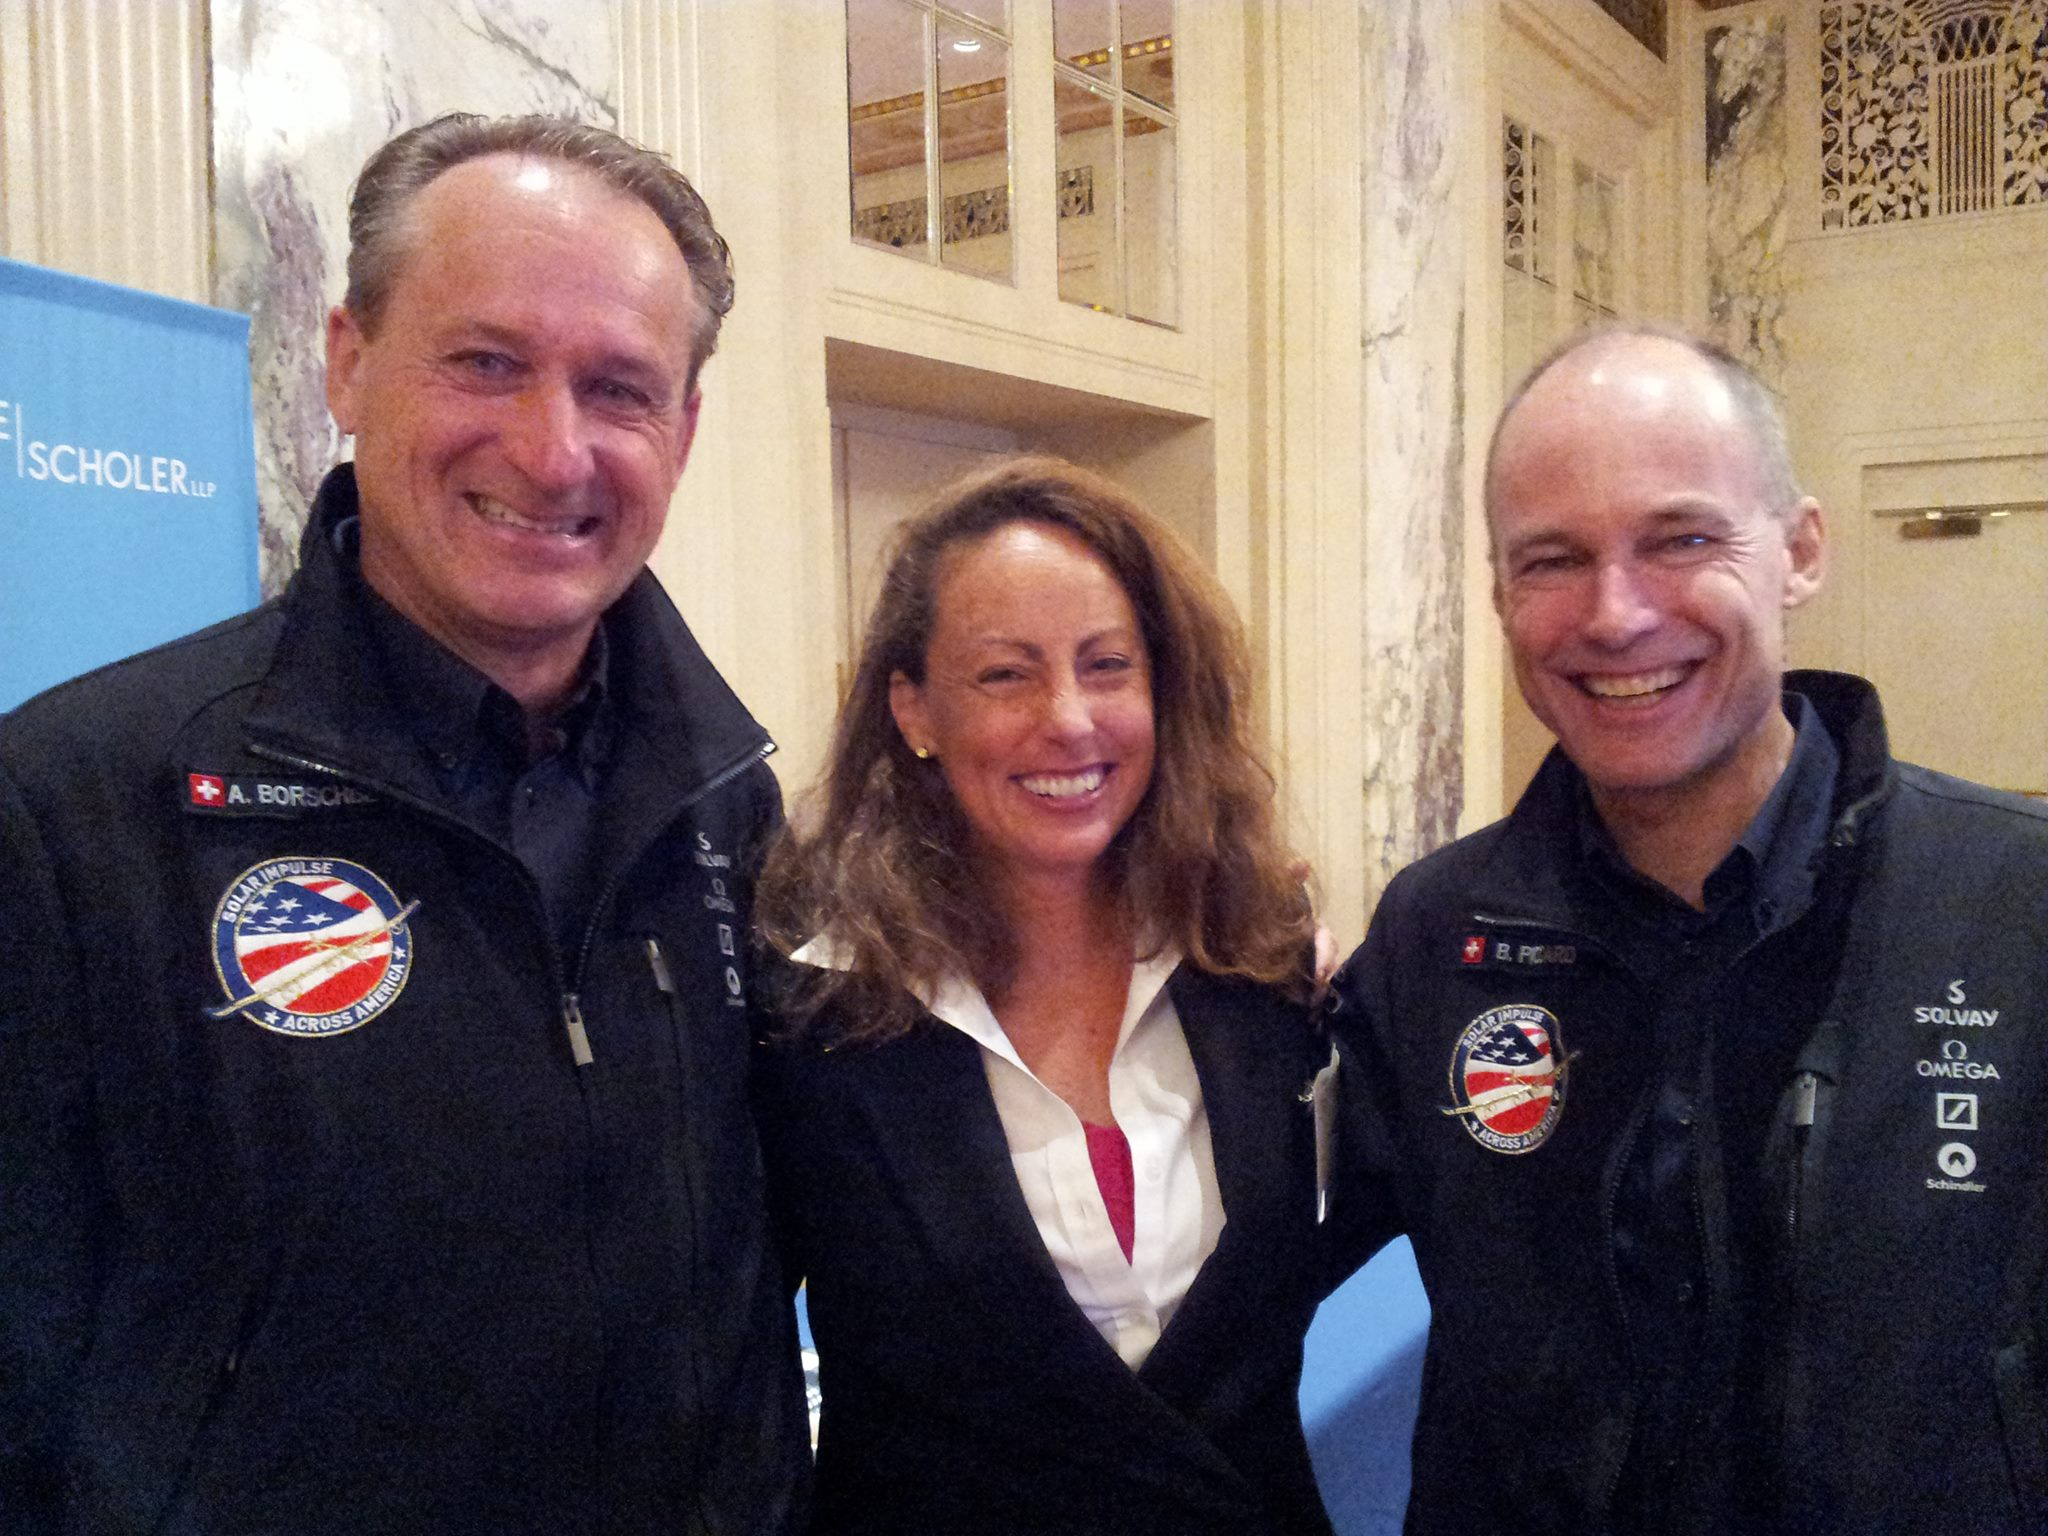 In the tone of realizing dreams, and being an inspiration for the Wall Street financial world at REFF Wall Street our friends André and Bertrand, the Pilot's of the Solar Impulse airplane teamed-up for a game changing keynote speech.